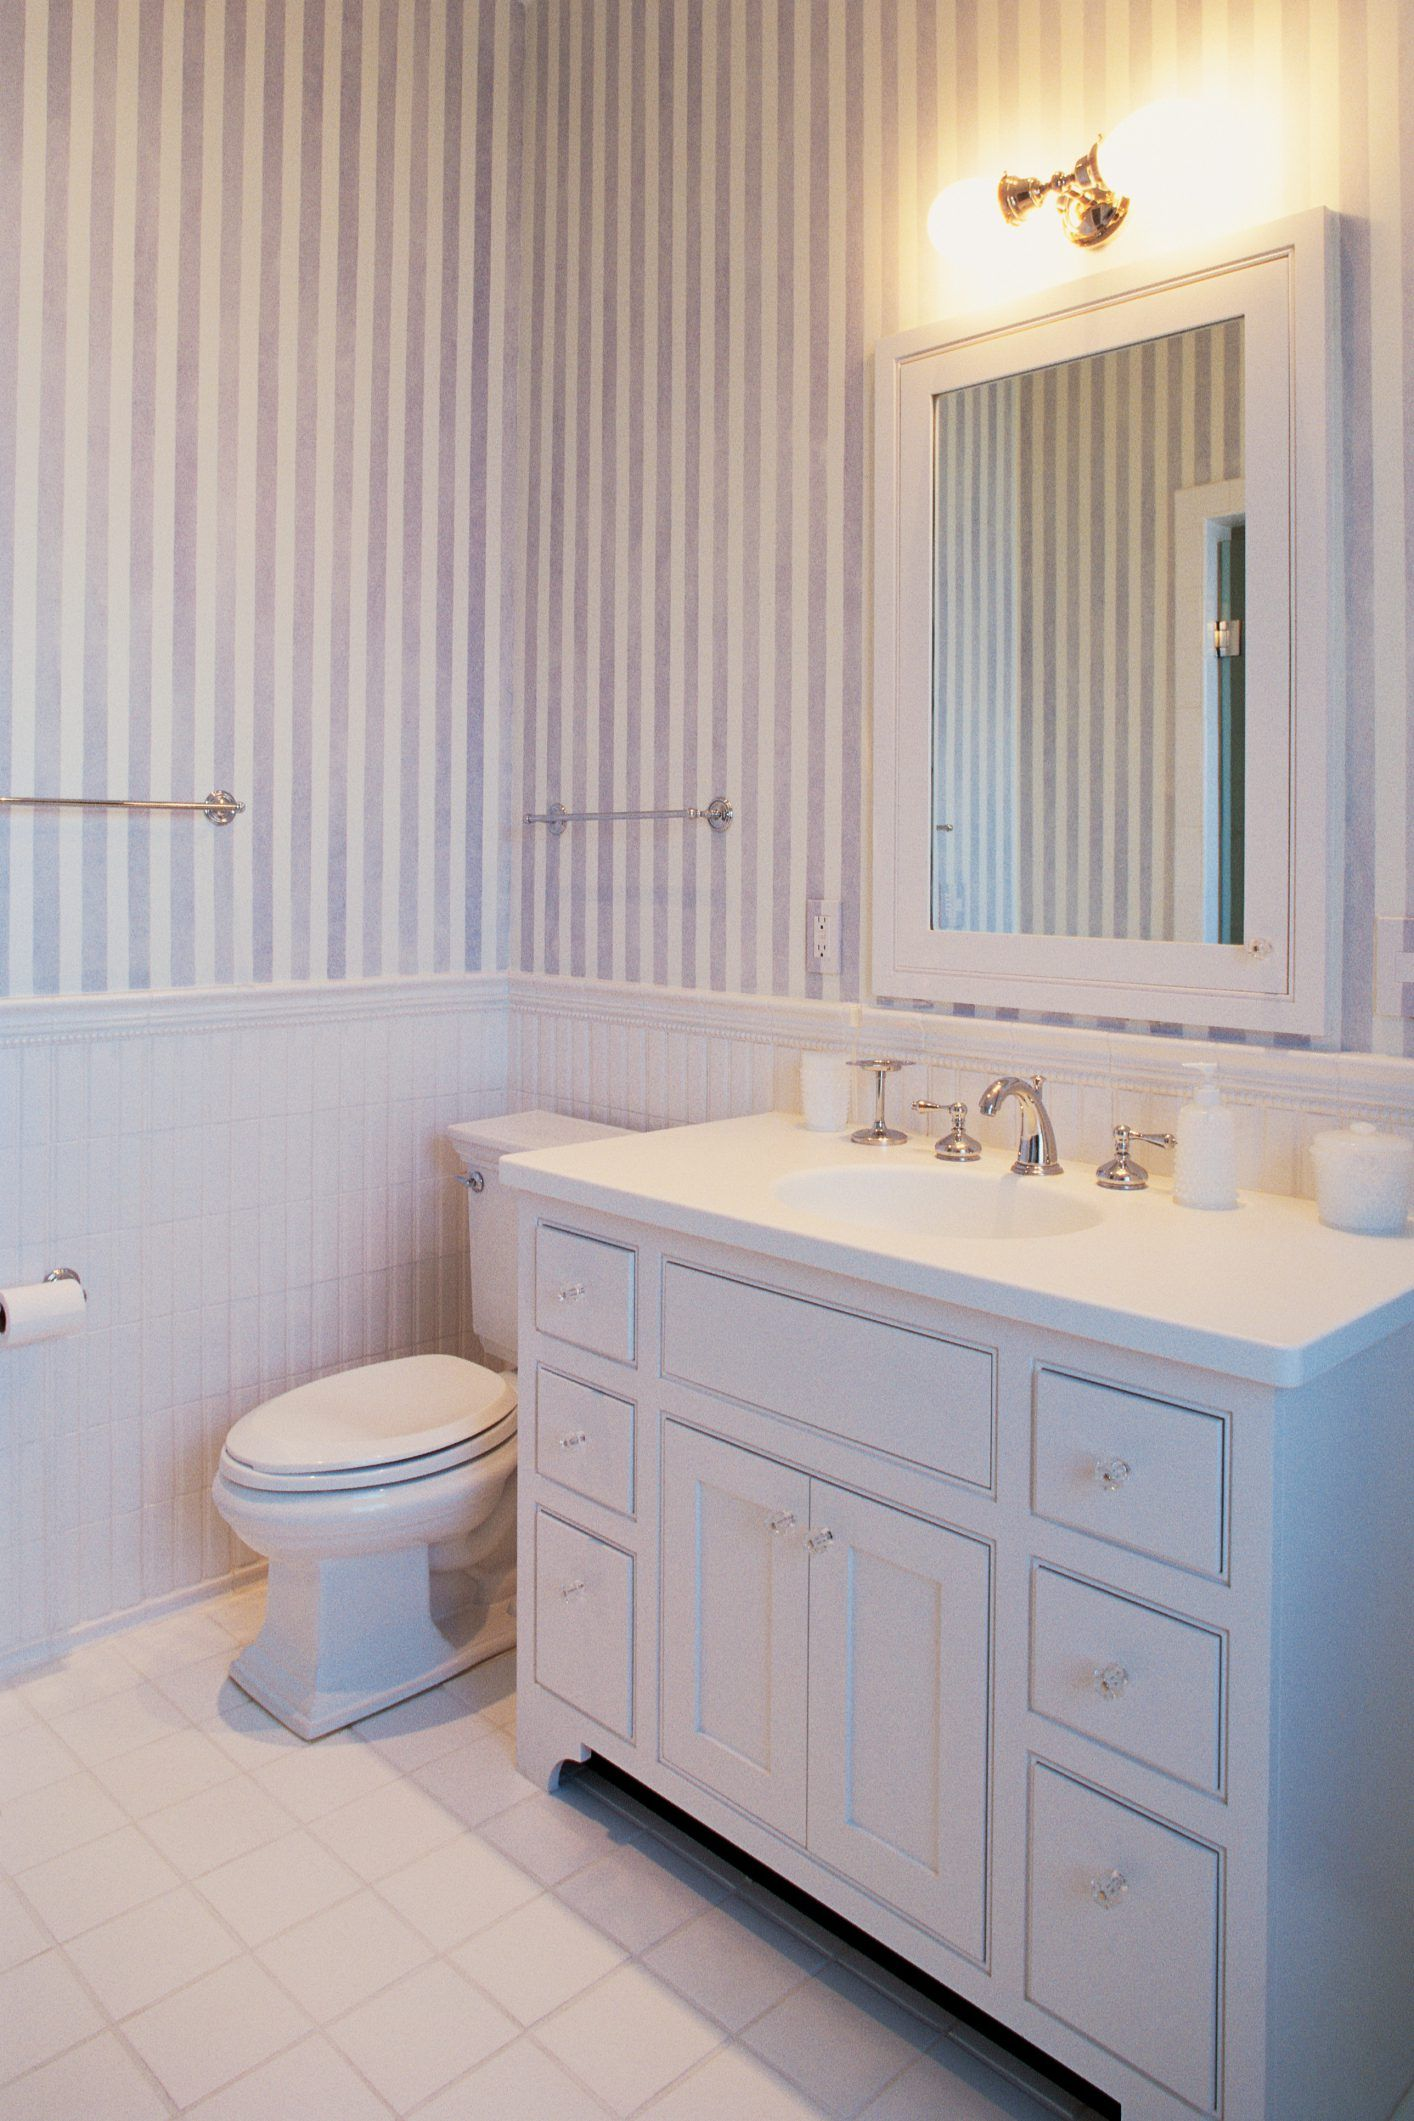 How To Install A Freestanding Bathroom Vanity Against A Wall